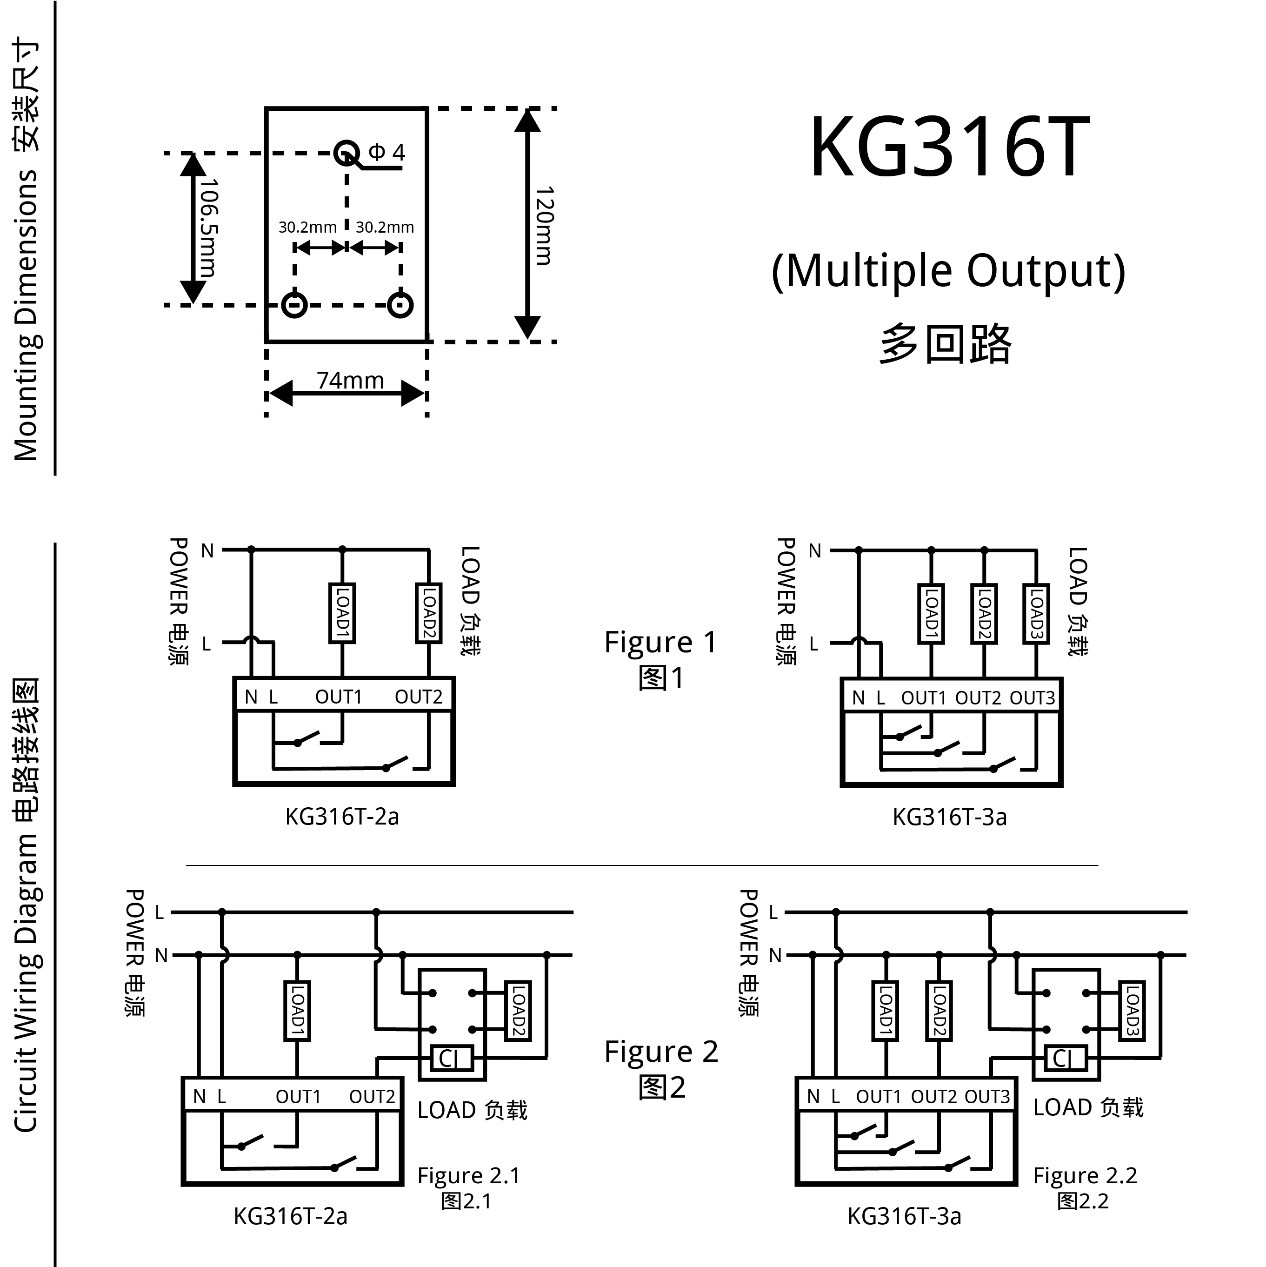 KG316T (multiple output) dimensions and wiring diagram